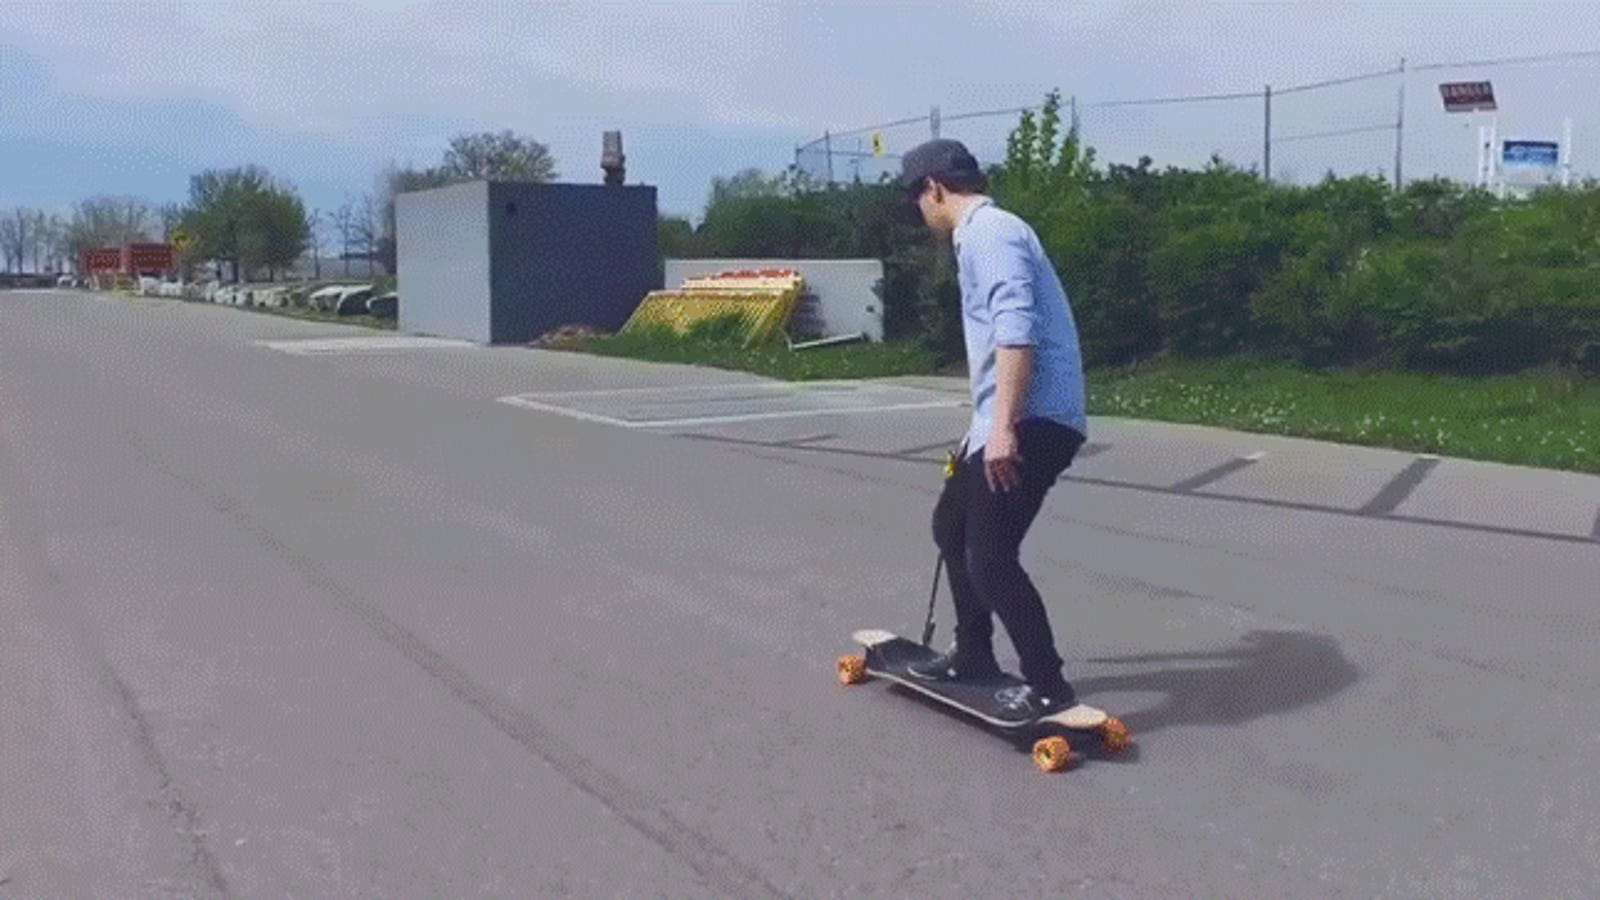 A Drill-Powered Skateboard Is the Silliest Way to Get Around Town